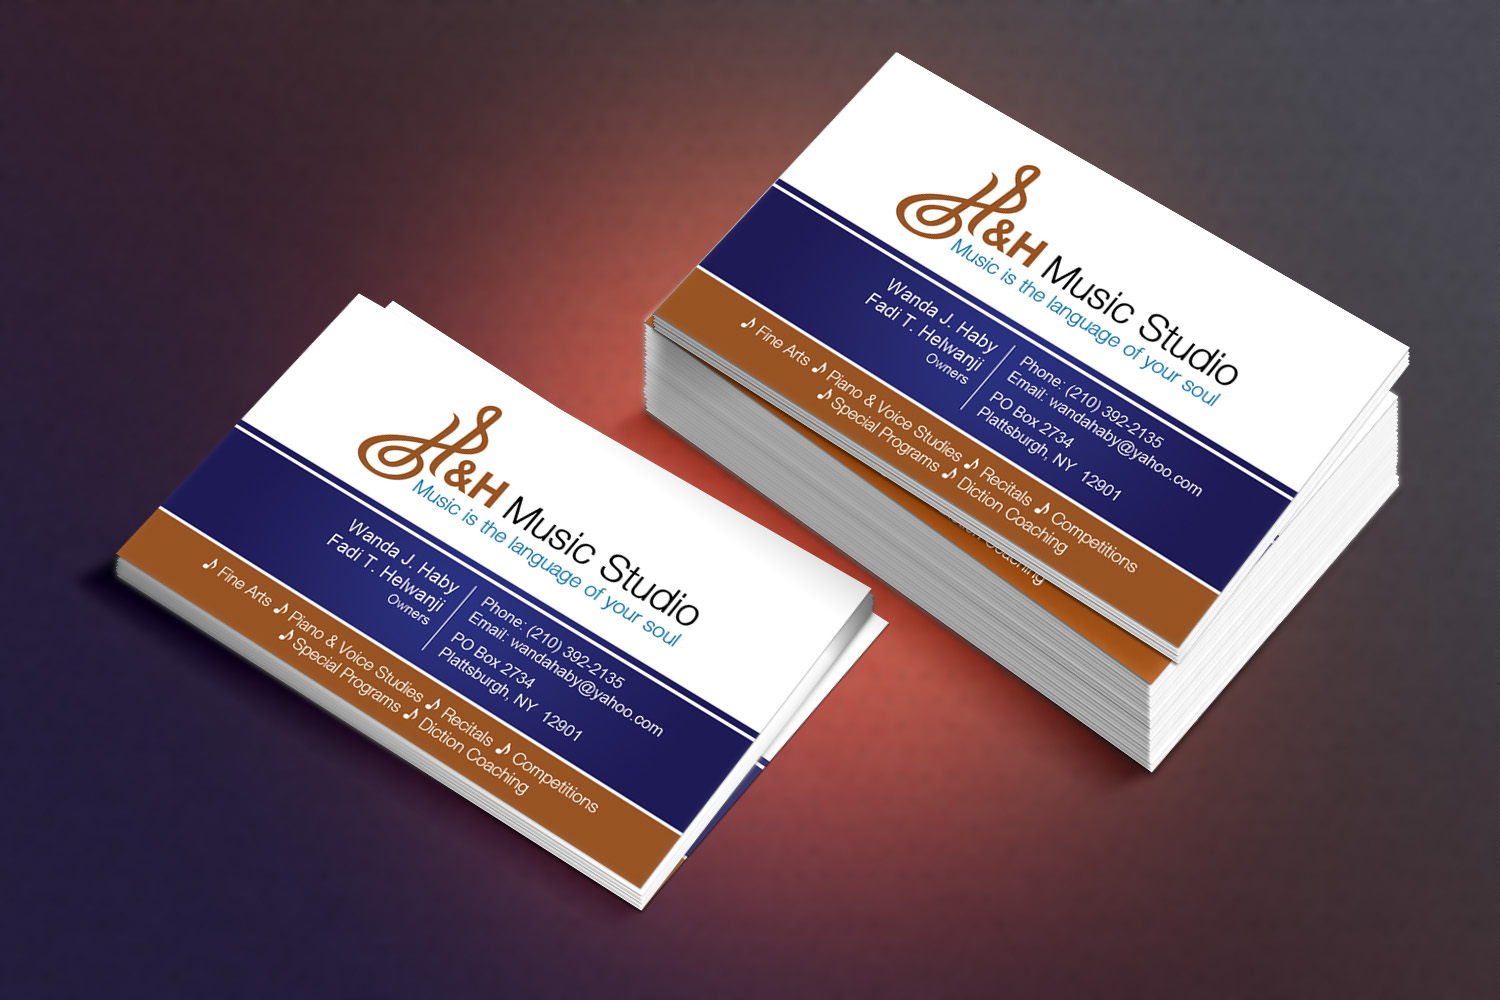 Business card design for fine artist best business 2017 plastic makeup artist business cards images card design and colourmoves Choice Image